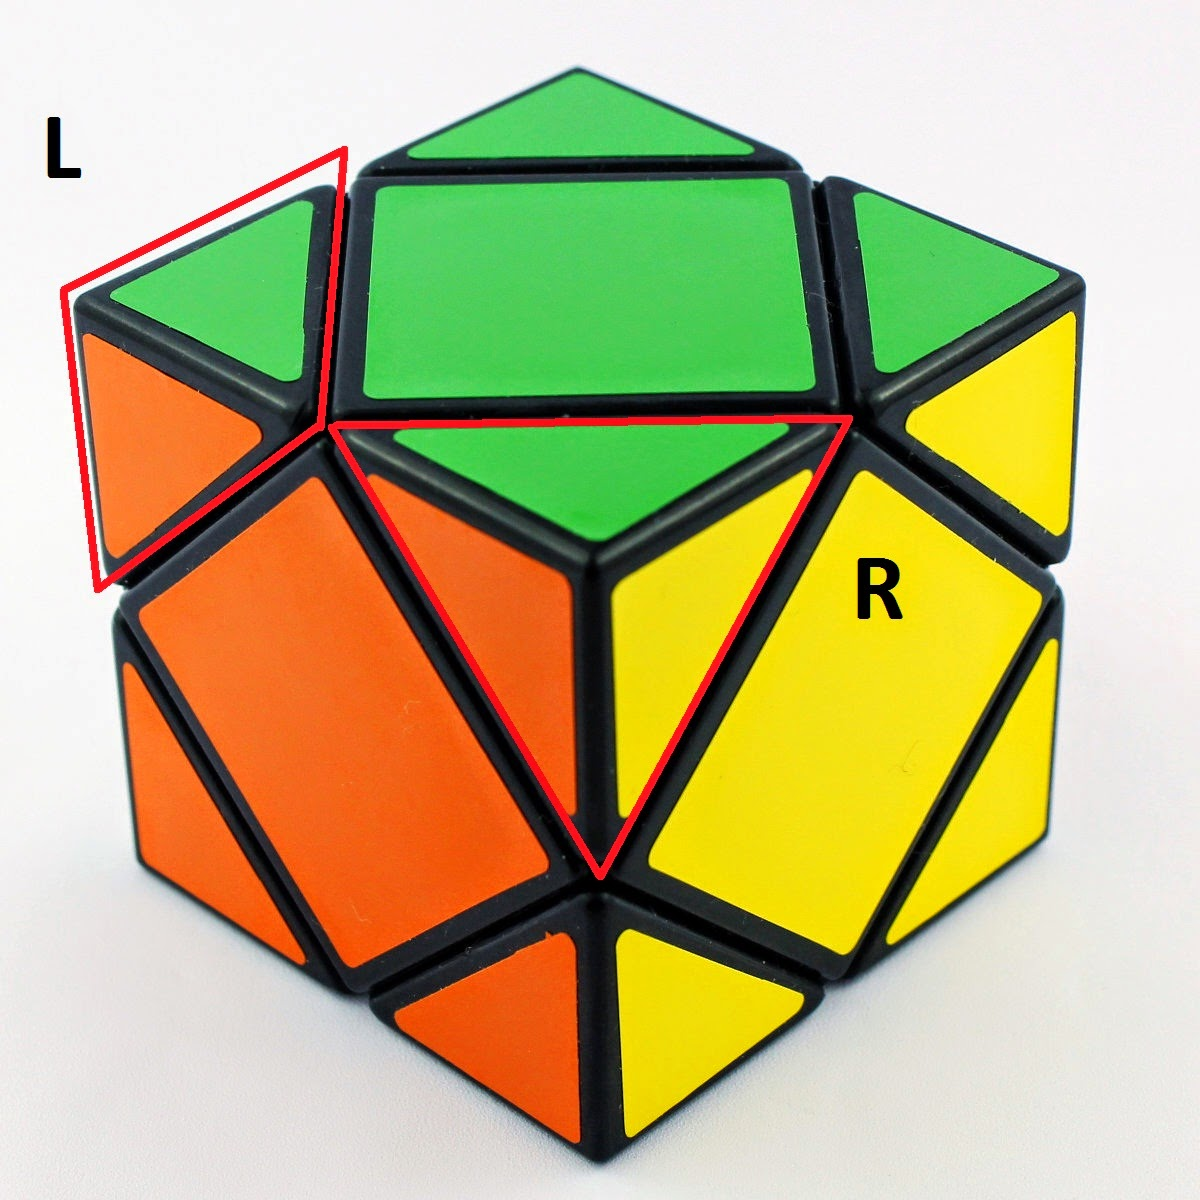 Squished Skewb vs Skewb Video Tutorial